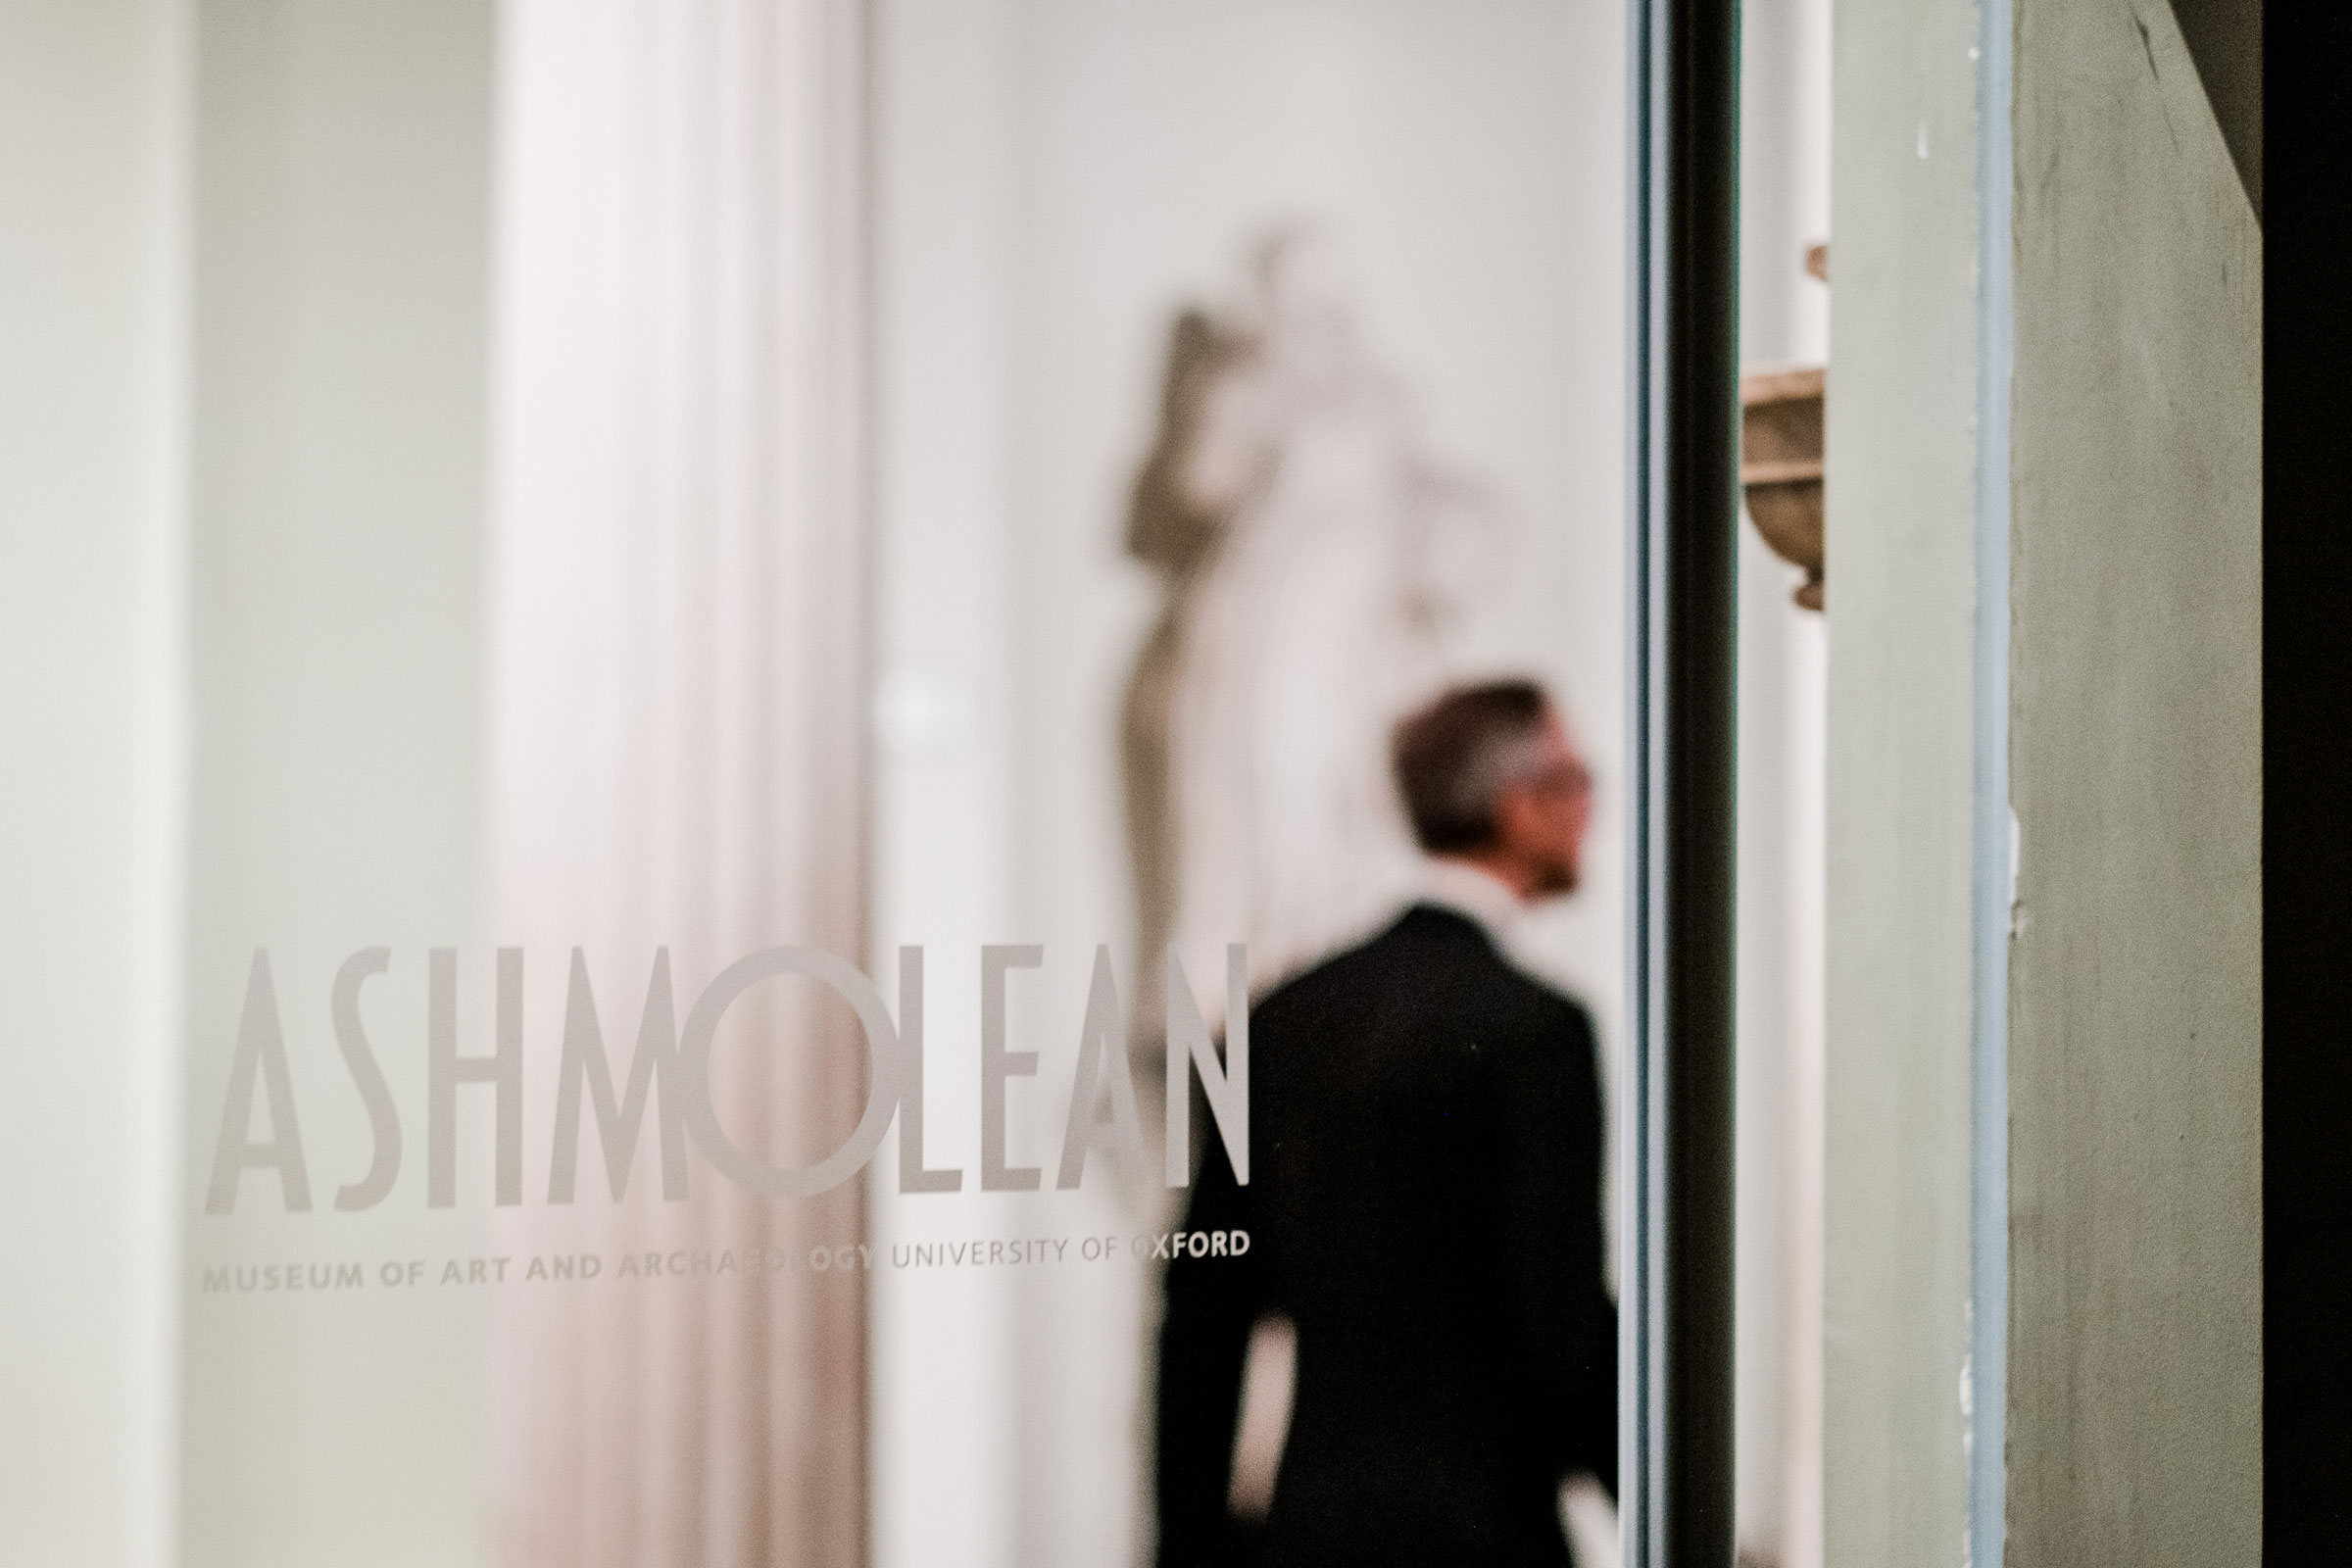 Events Photography at the Ashmolean Museum